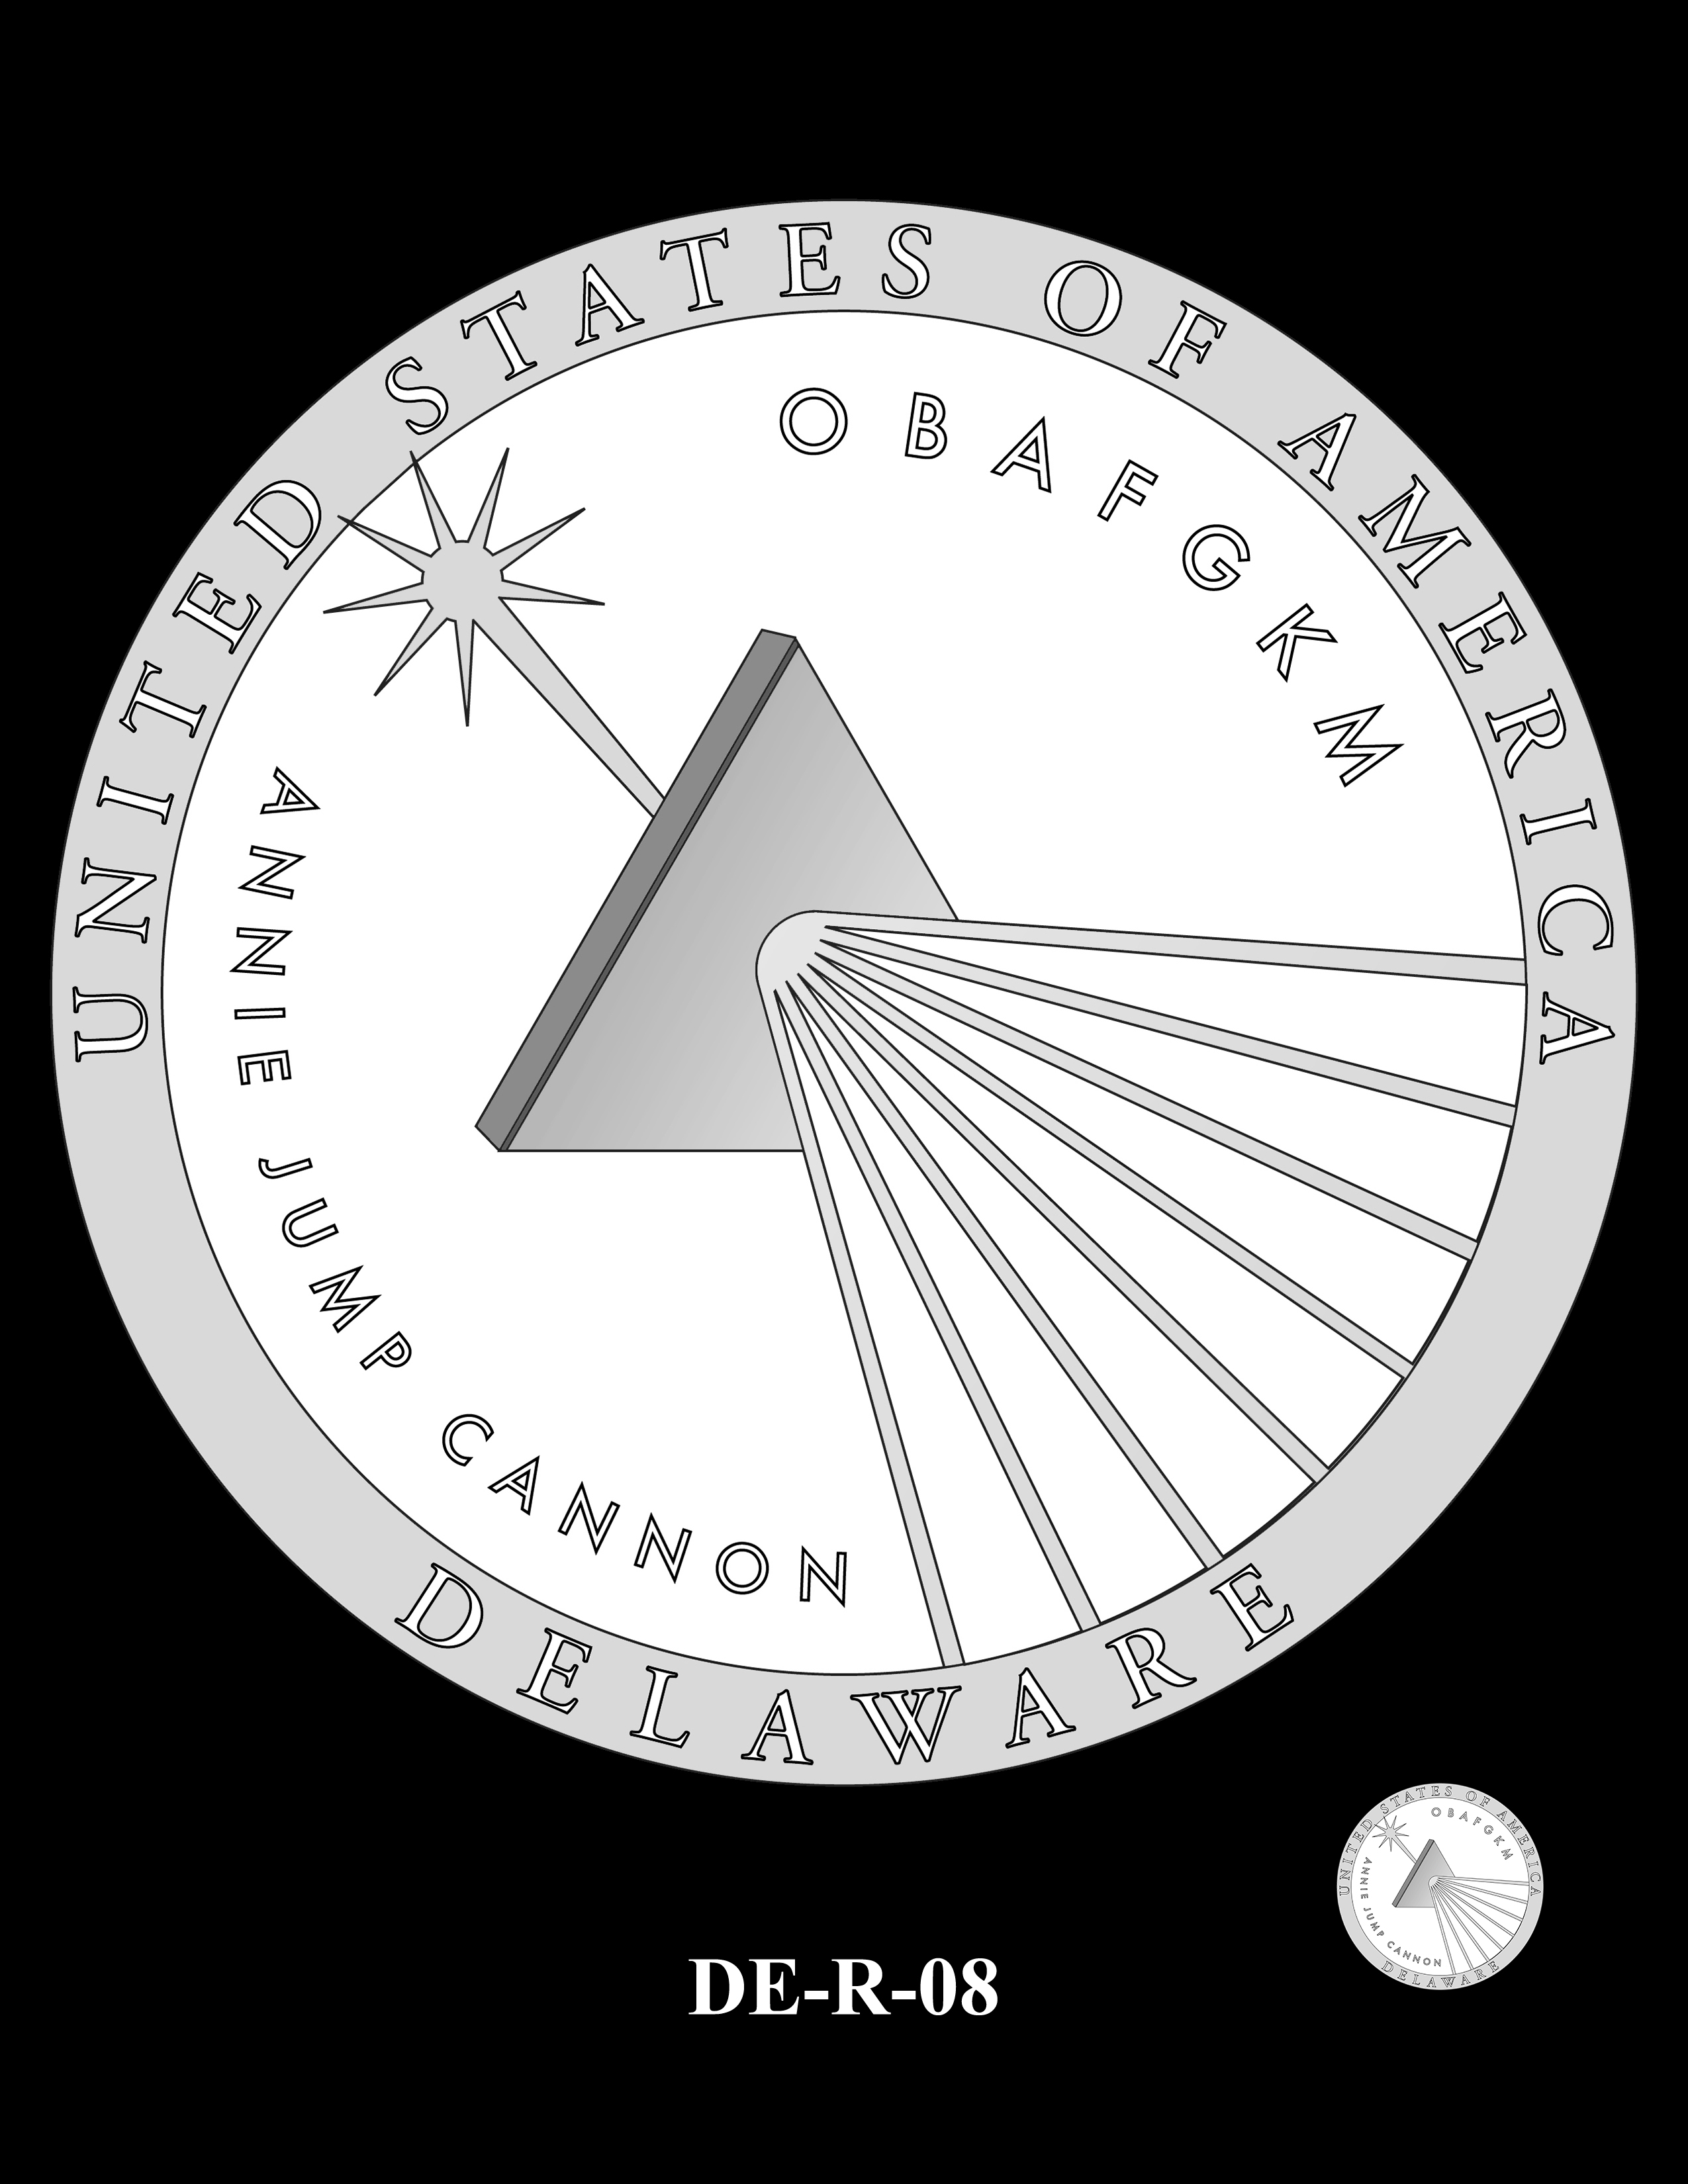 DE-R-08 -- 2019 American Innovation $1 Coin Program